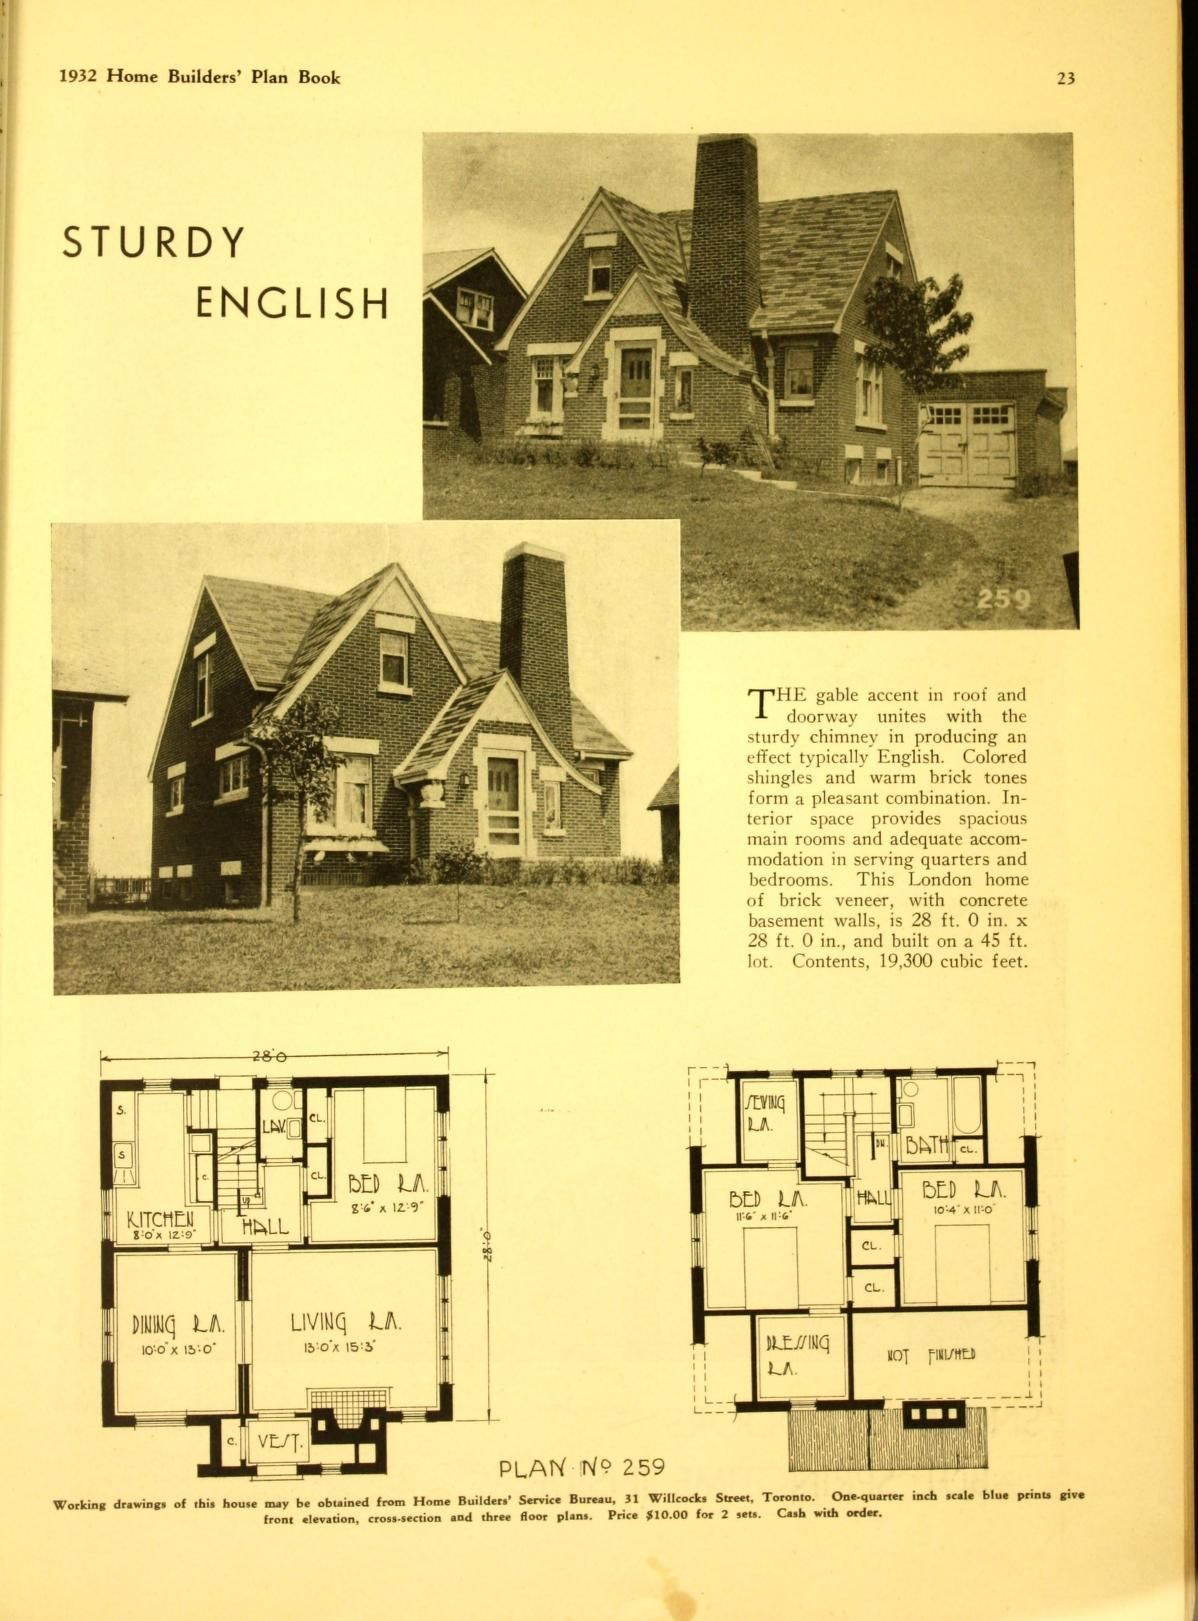 1932 home builders plan book. | Vintage House | Home ... Home Builders Plan Book on home business plans, home plumbing plans, home garage plans, home floor plans elevation sustainable, funeral home plans, home design plans, home foundation plans, home additions plans, home architect plans, home electrical plans, home hardware building plans, home landscaping plans, home roof plans, home furniture plans, carolina home plans, 10000 square foot home plans, home build plans,